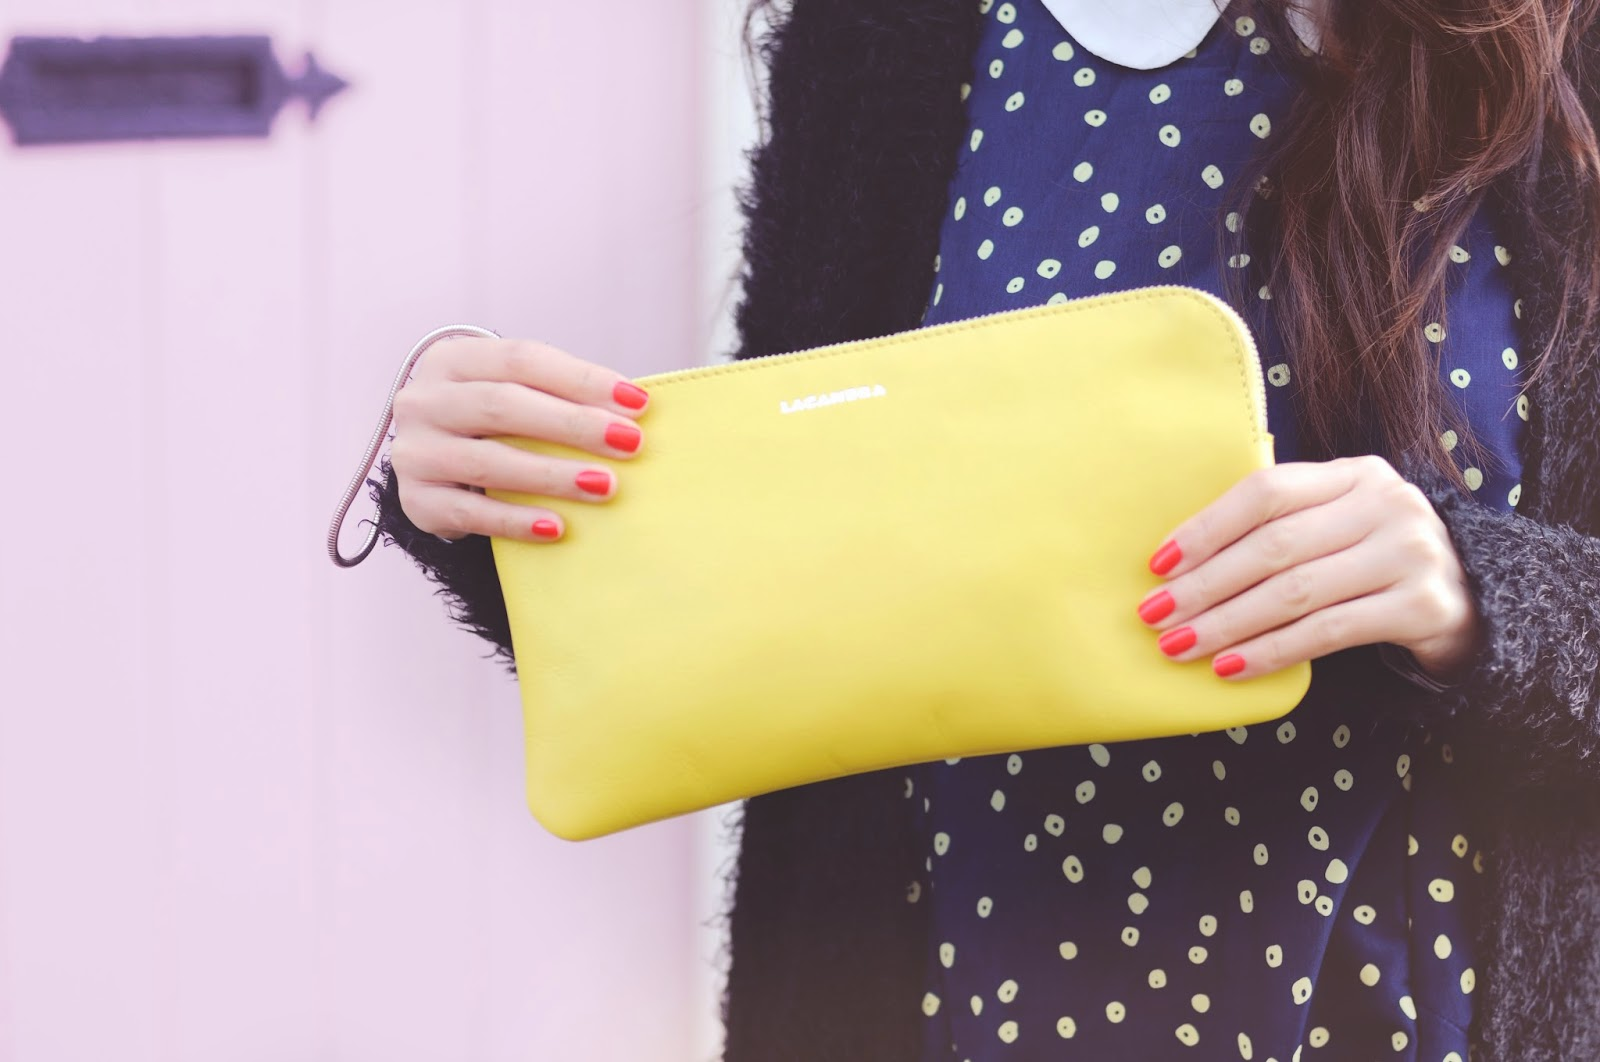 Styling statement accessories, ways to wear a yellow clutch bag